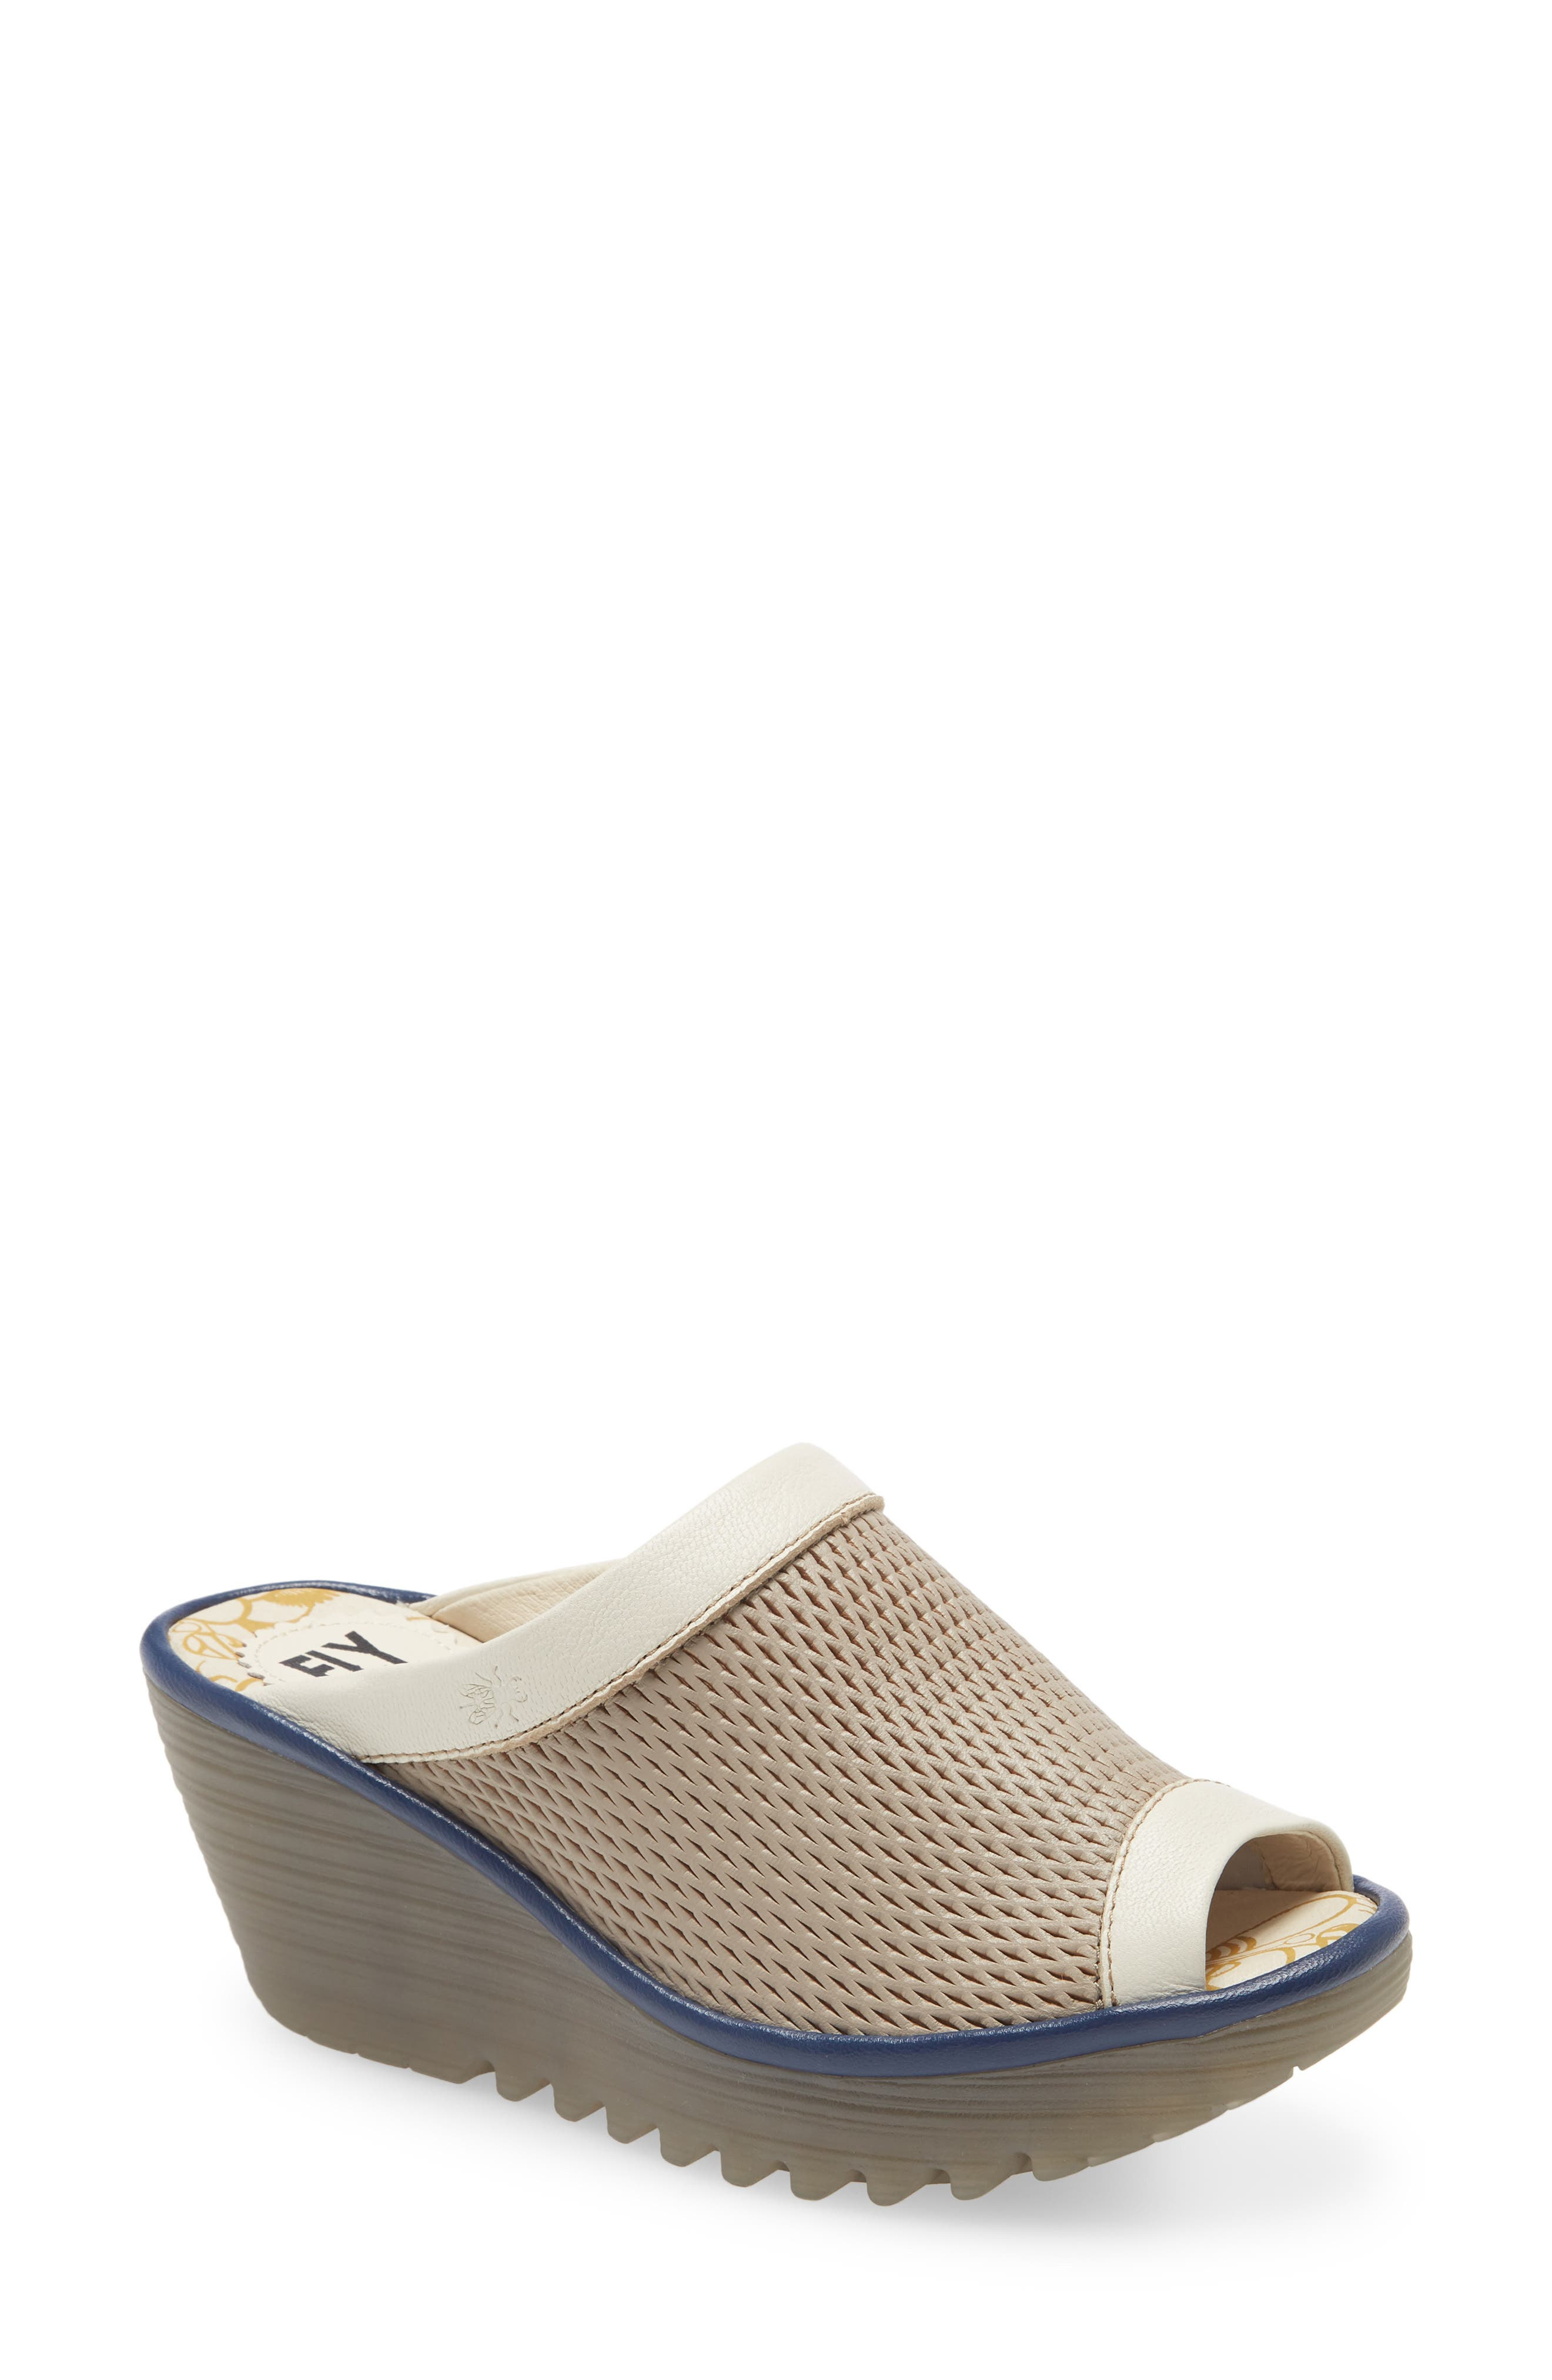 Latticed perforations add breathability to a foam-cushioned slide sandal lifted by the brand\\\'s signature, sporty textured wedge and platform. Style Name: Fly London Yeno Wedge Slide Sandal (Women). Style Number: 6002340. Available in stores.